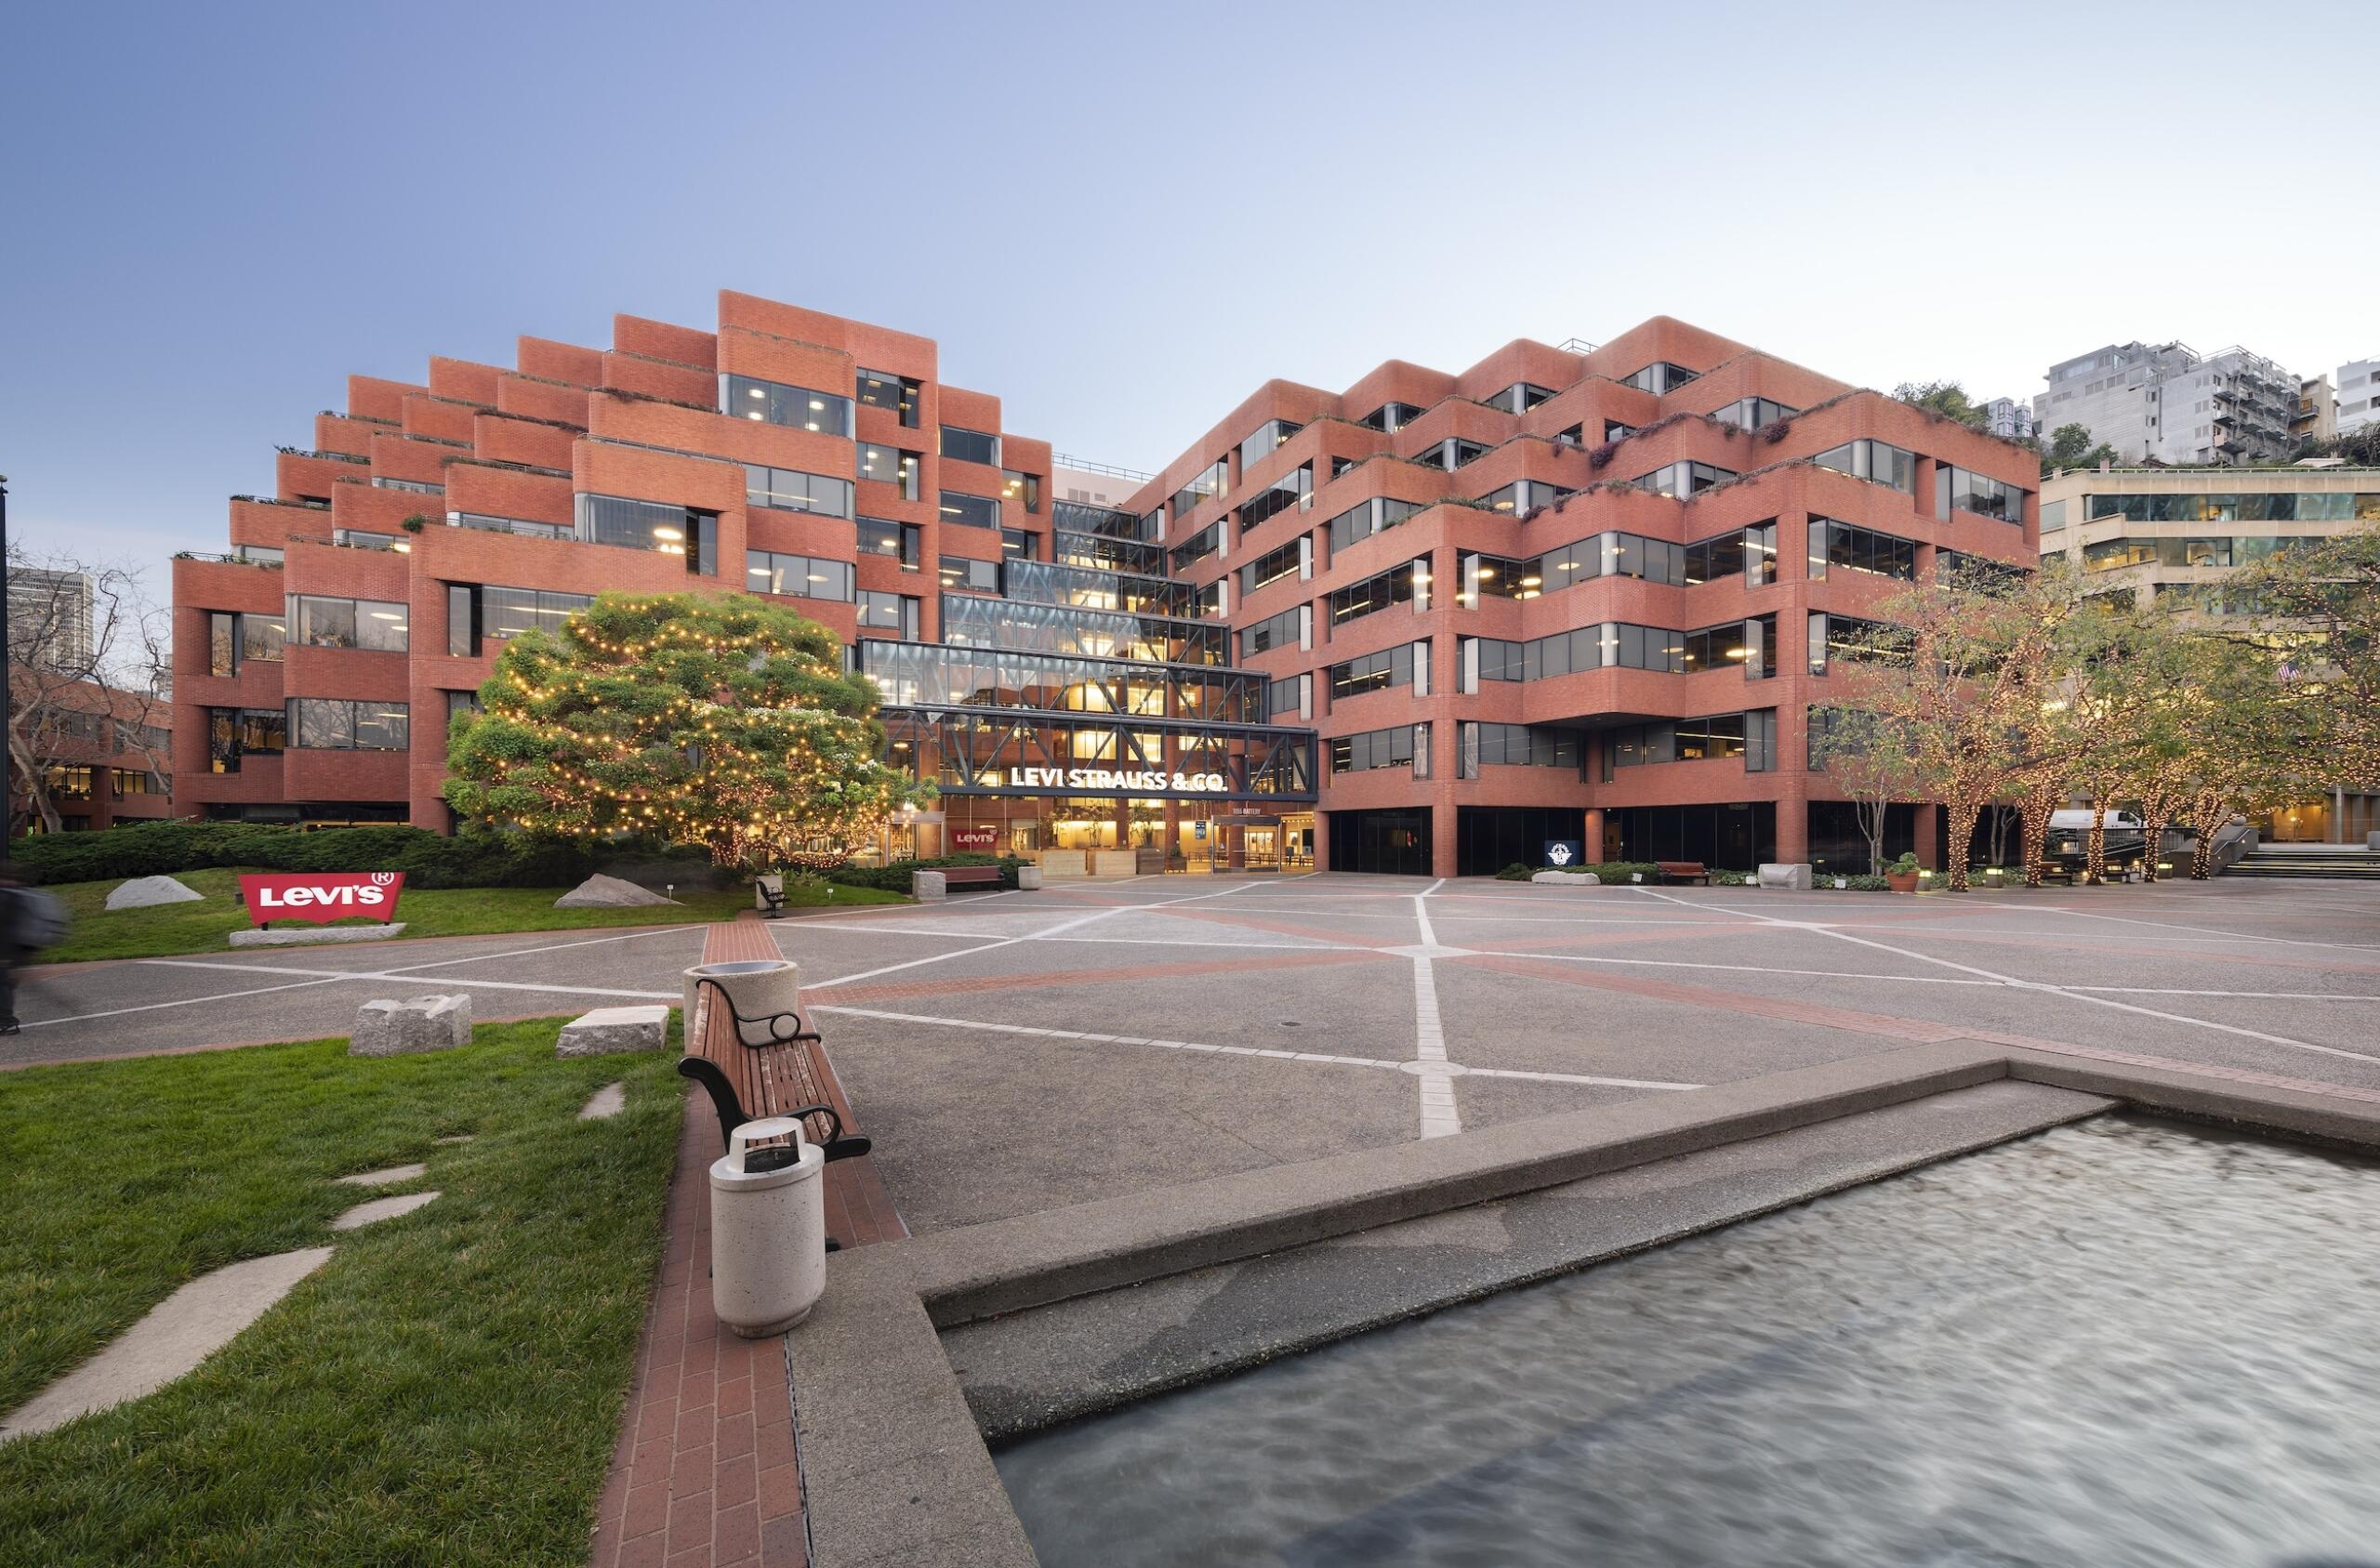 Exterior of Levi's Plaza in San Francisco with water in foreground